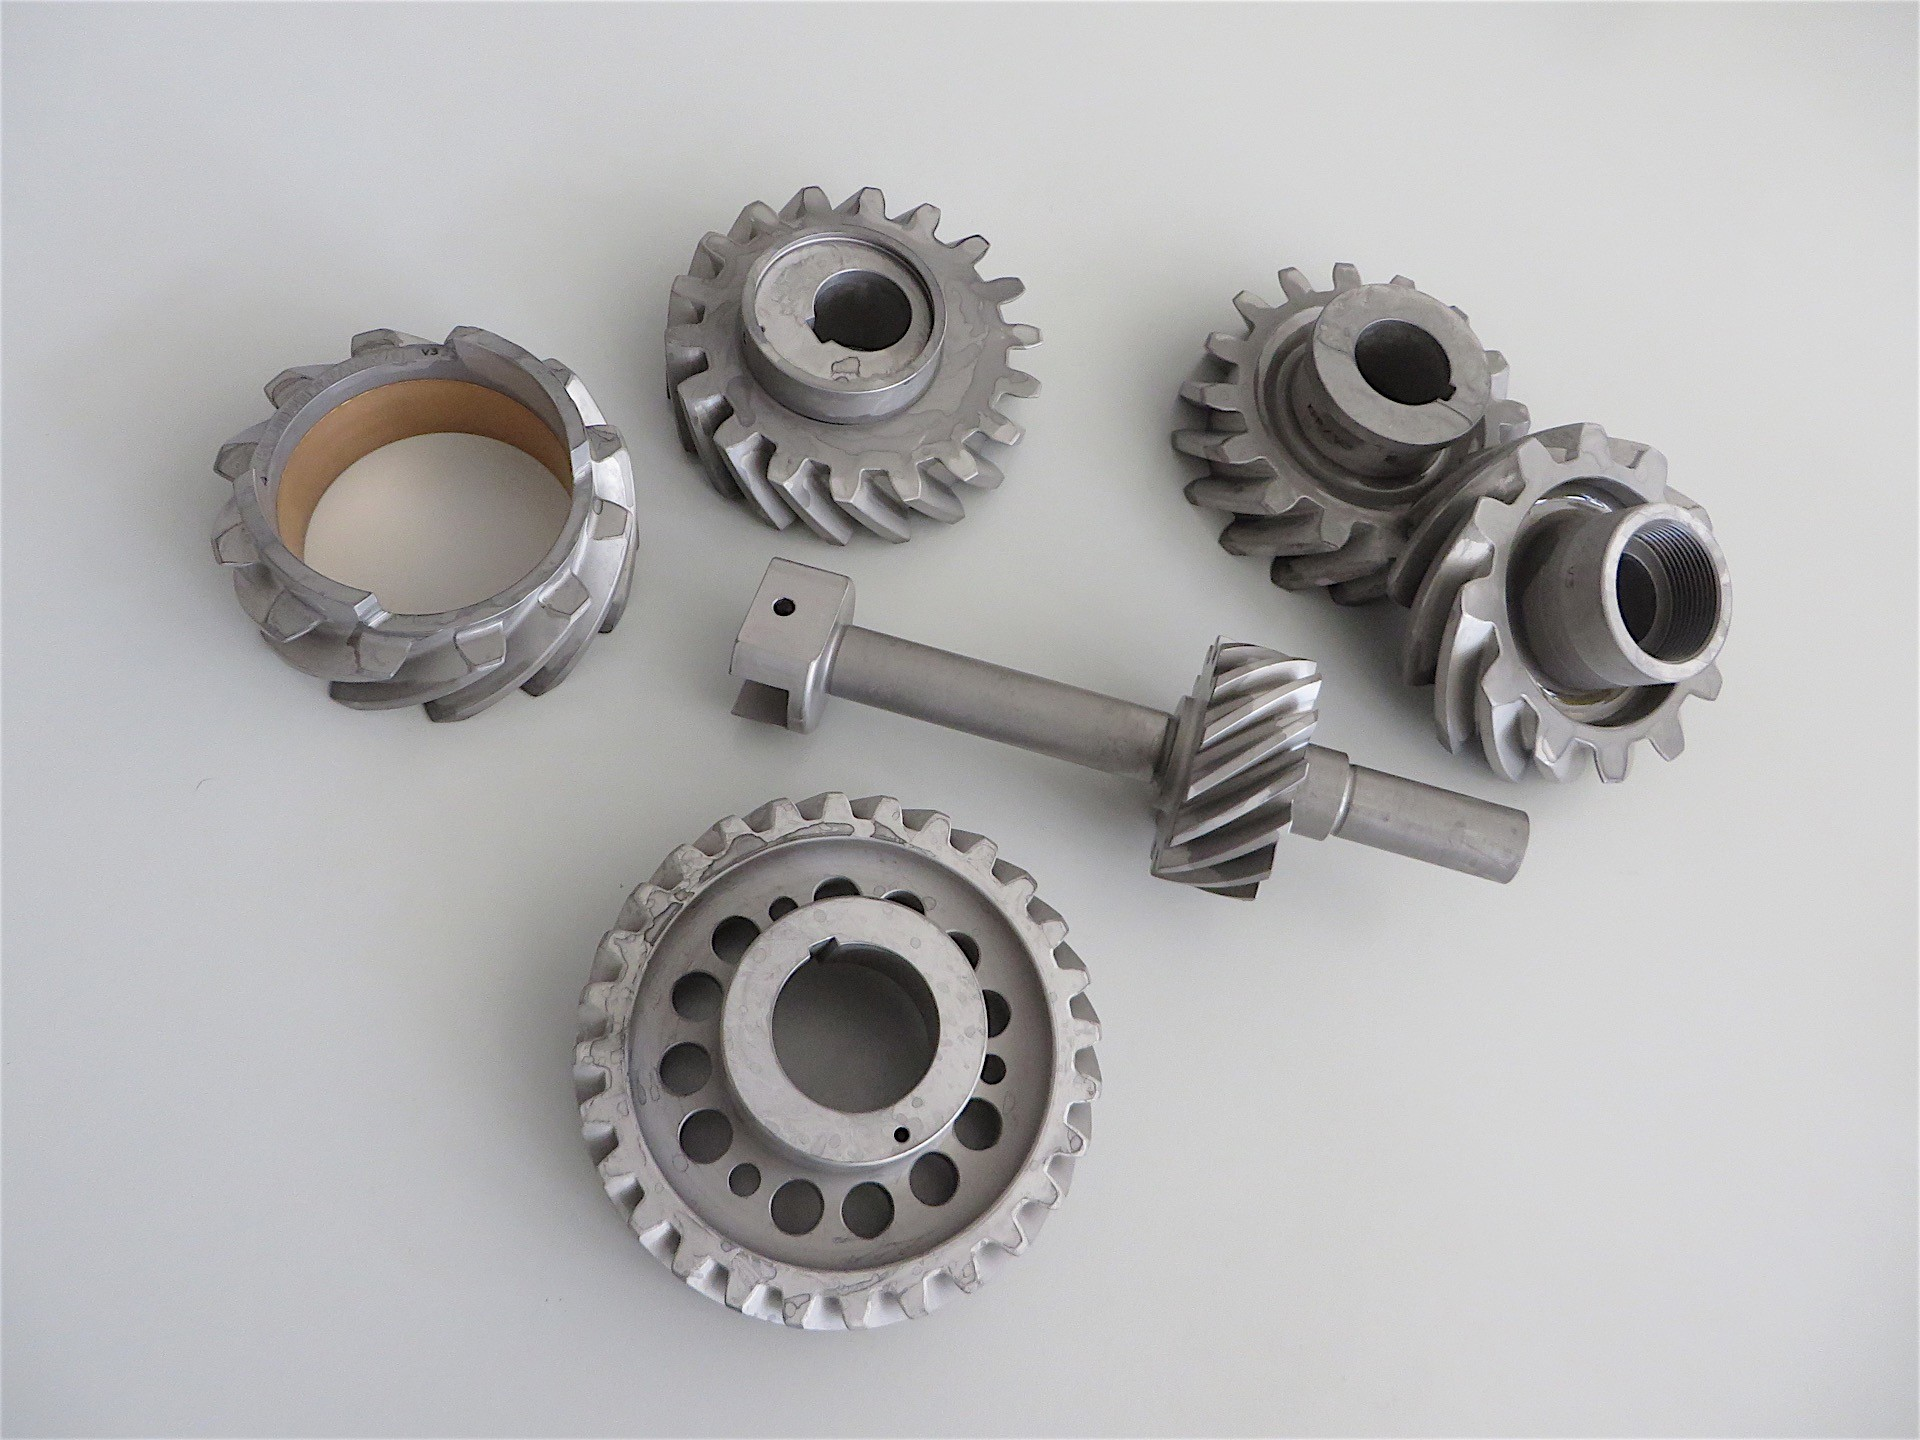 Mercedes Benz Launches Official Reproduced Parts Range For Pre War Engine Spare Classics In Original Quality